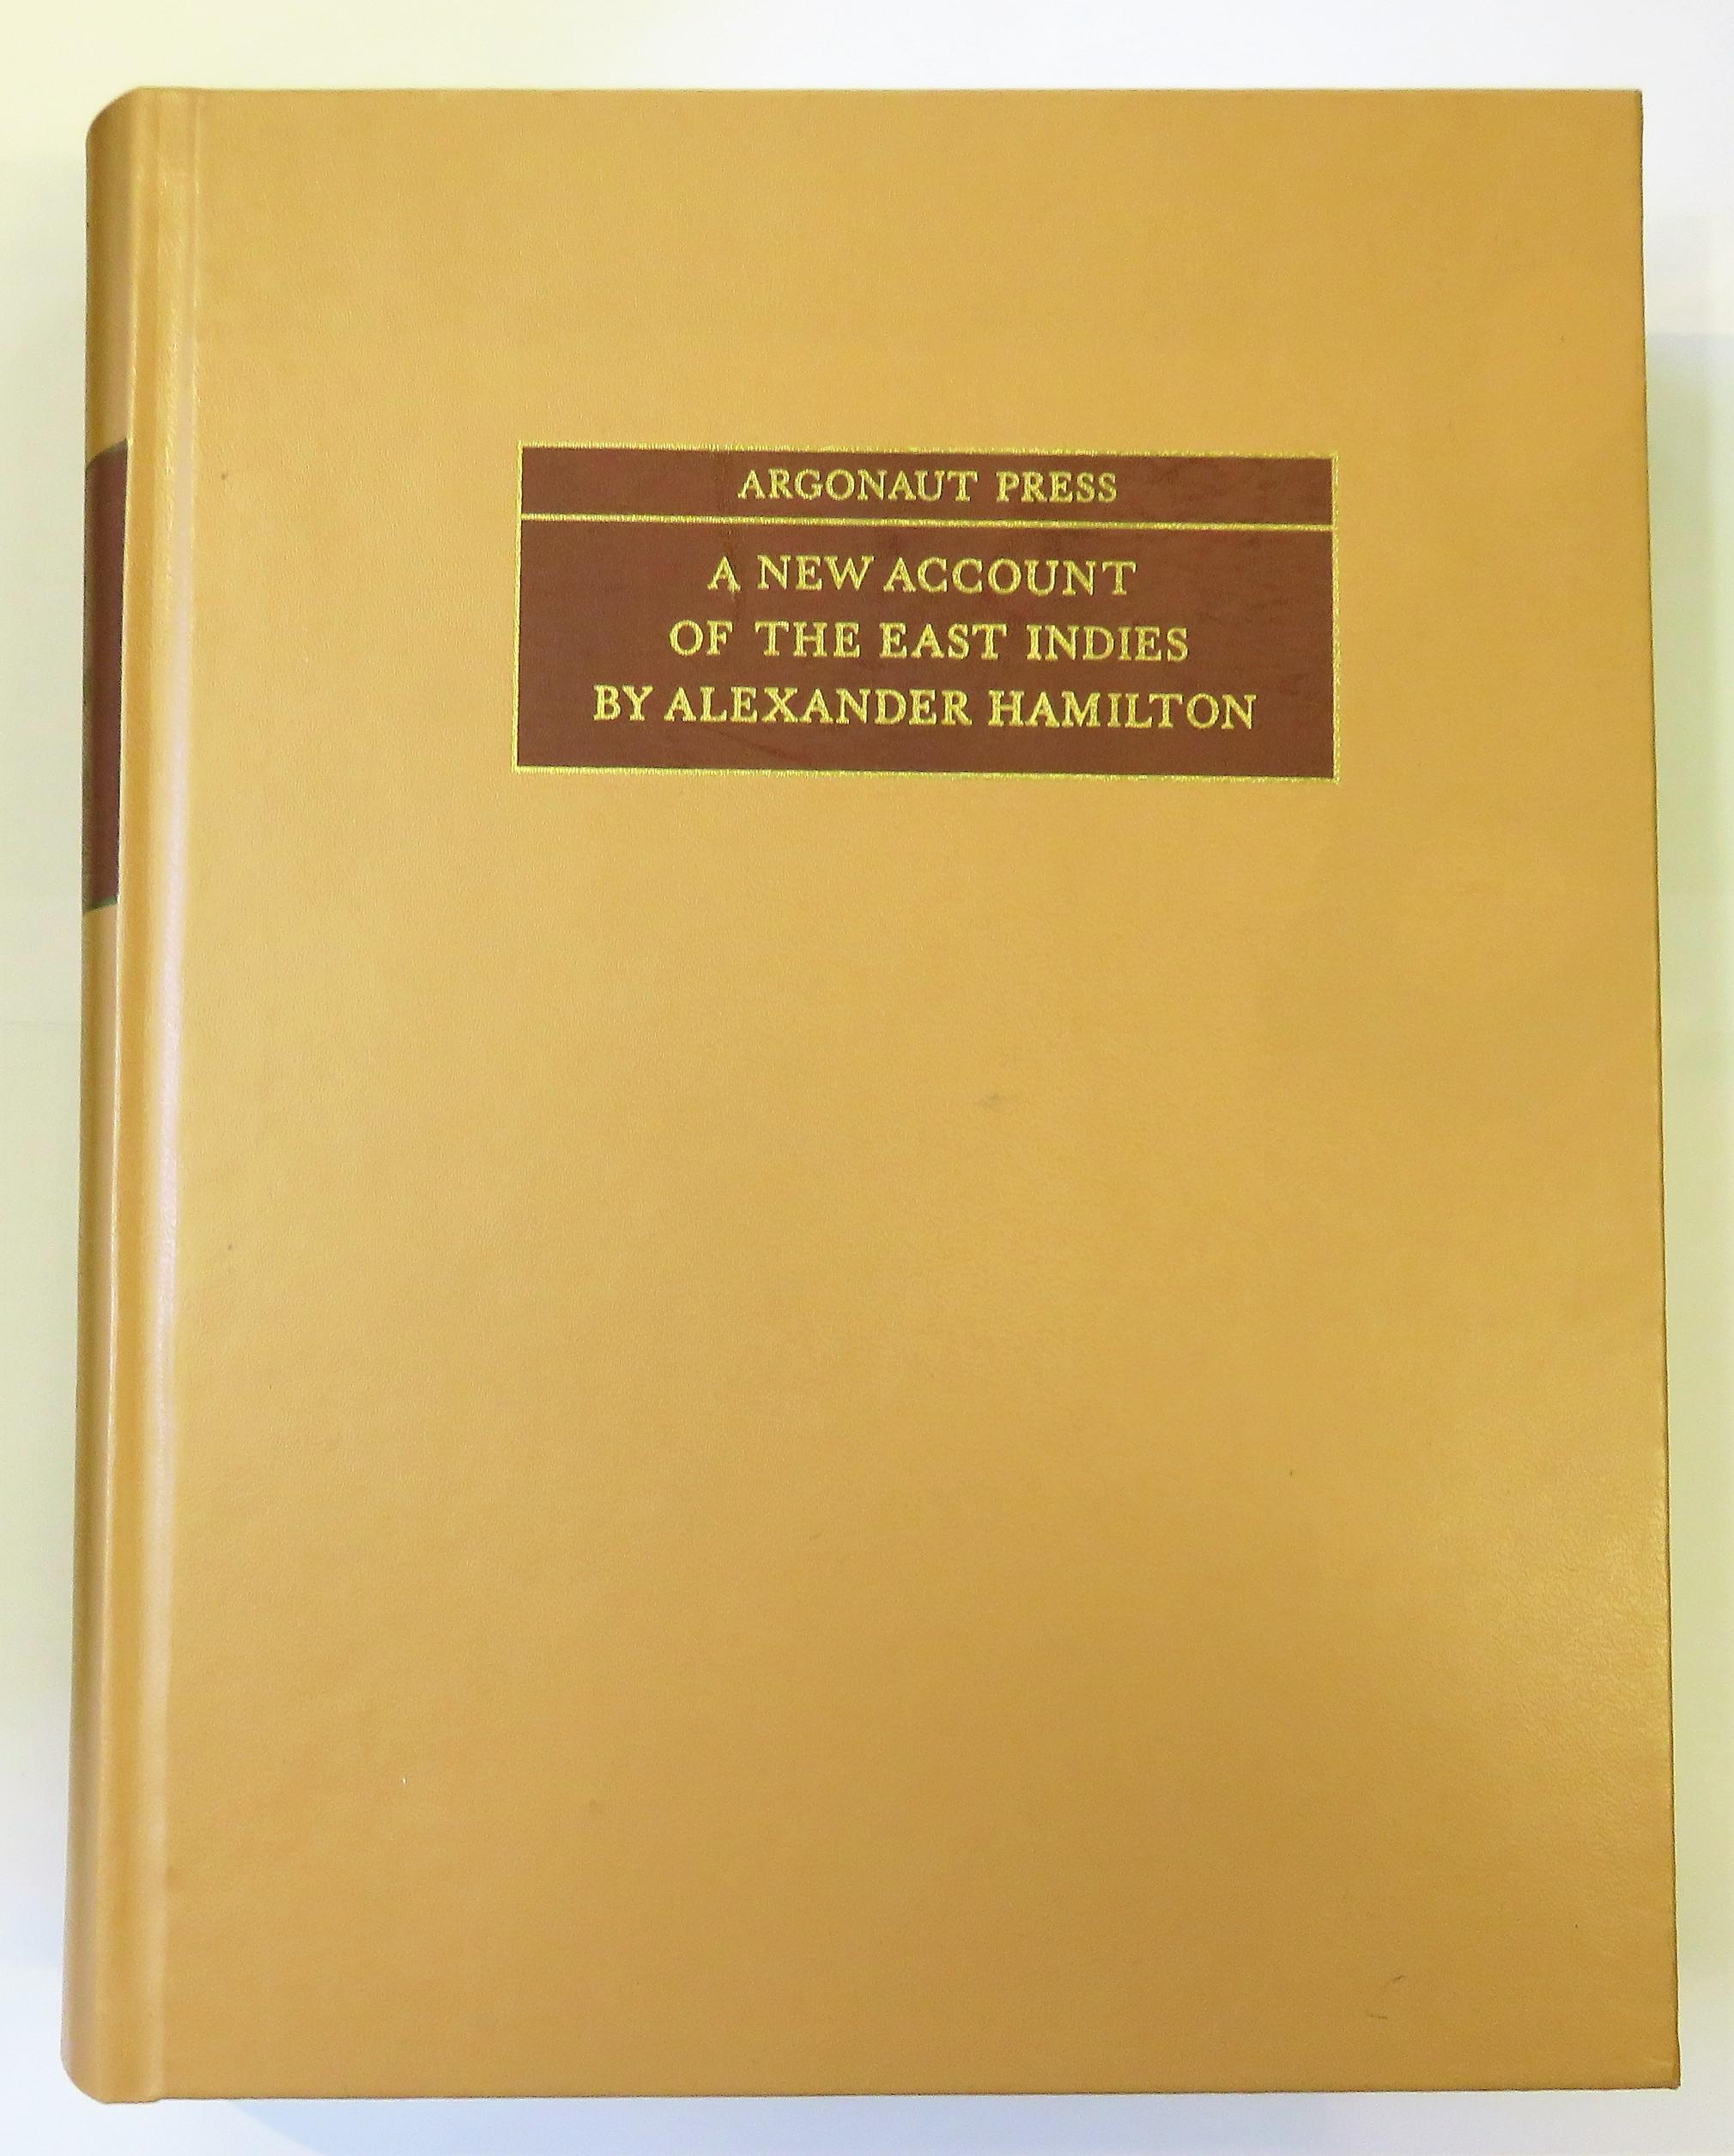 A New Account Of The East Indies Argonaut Press #8